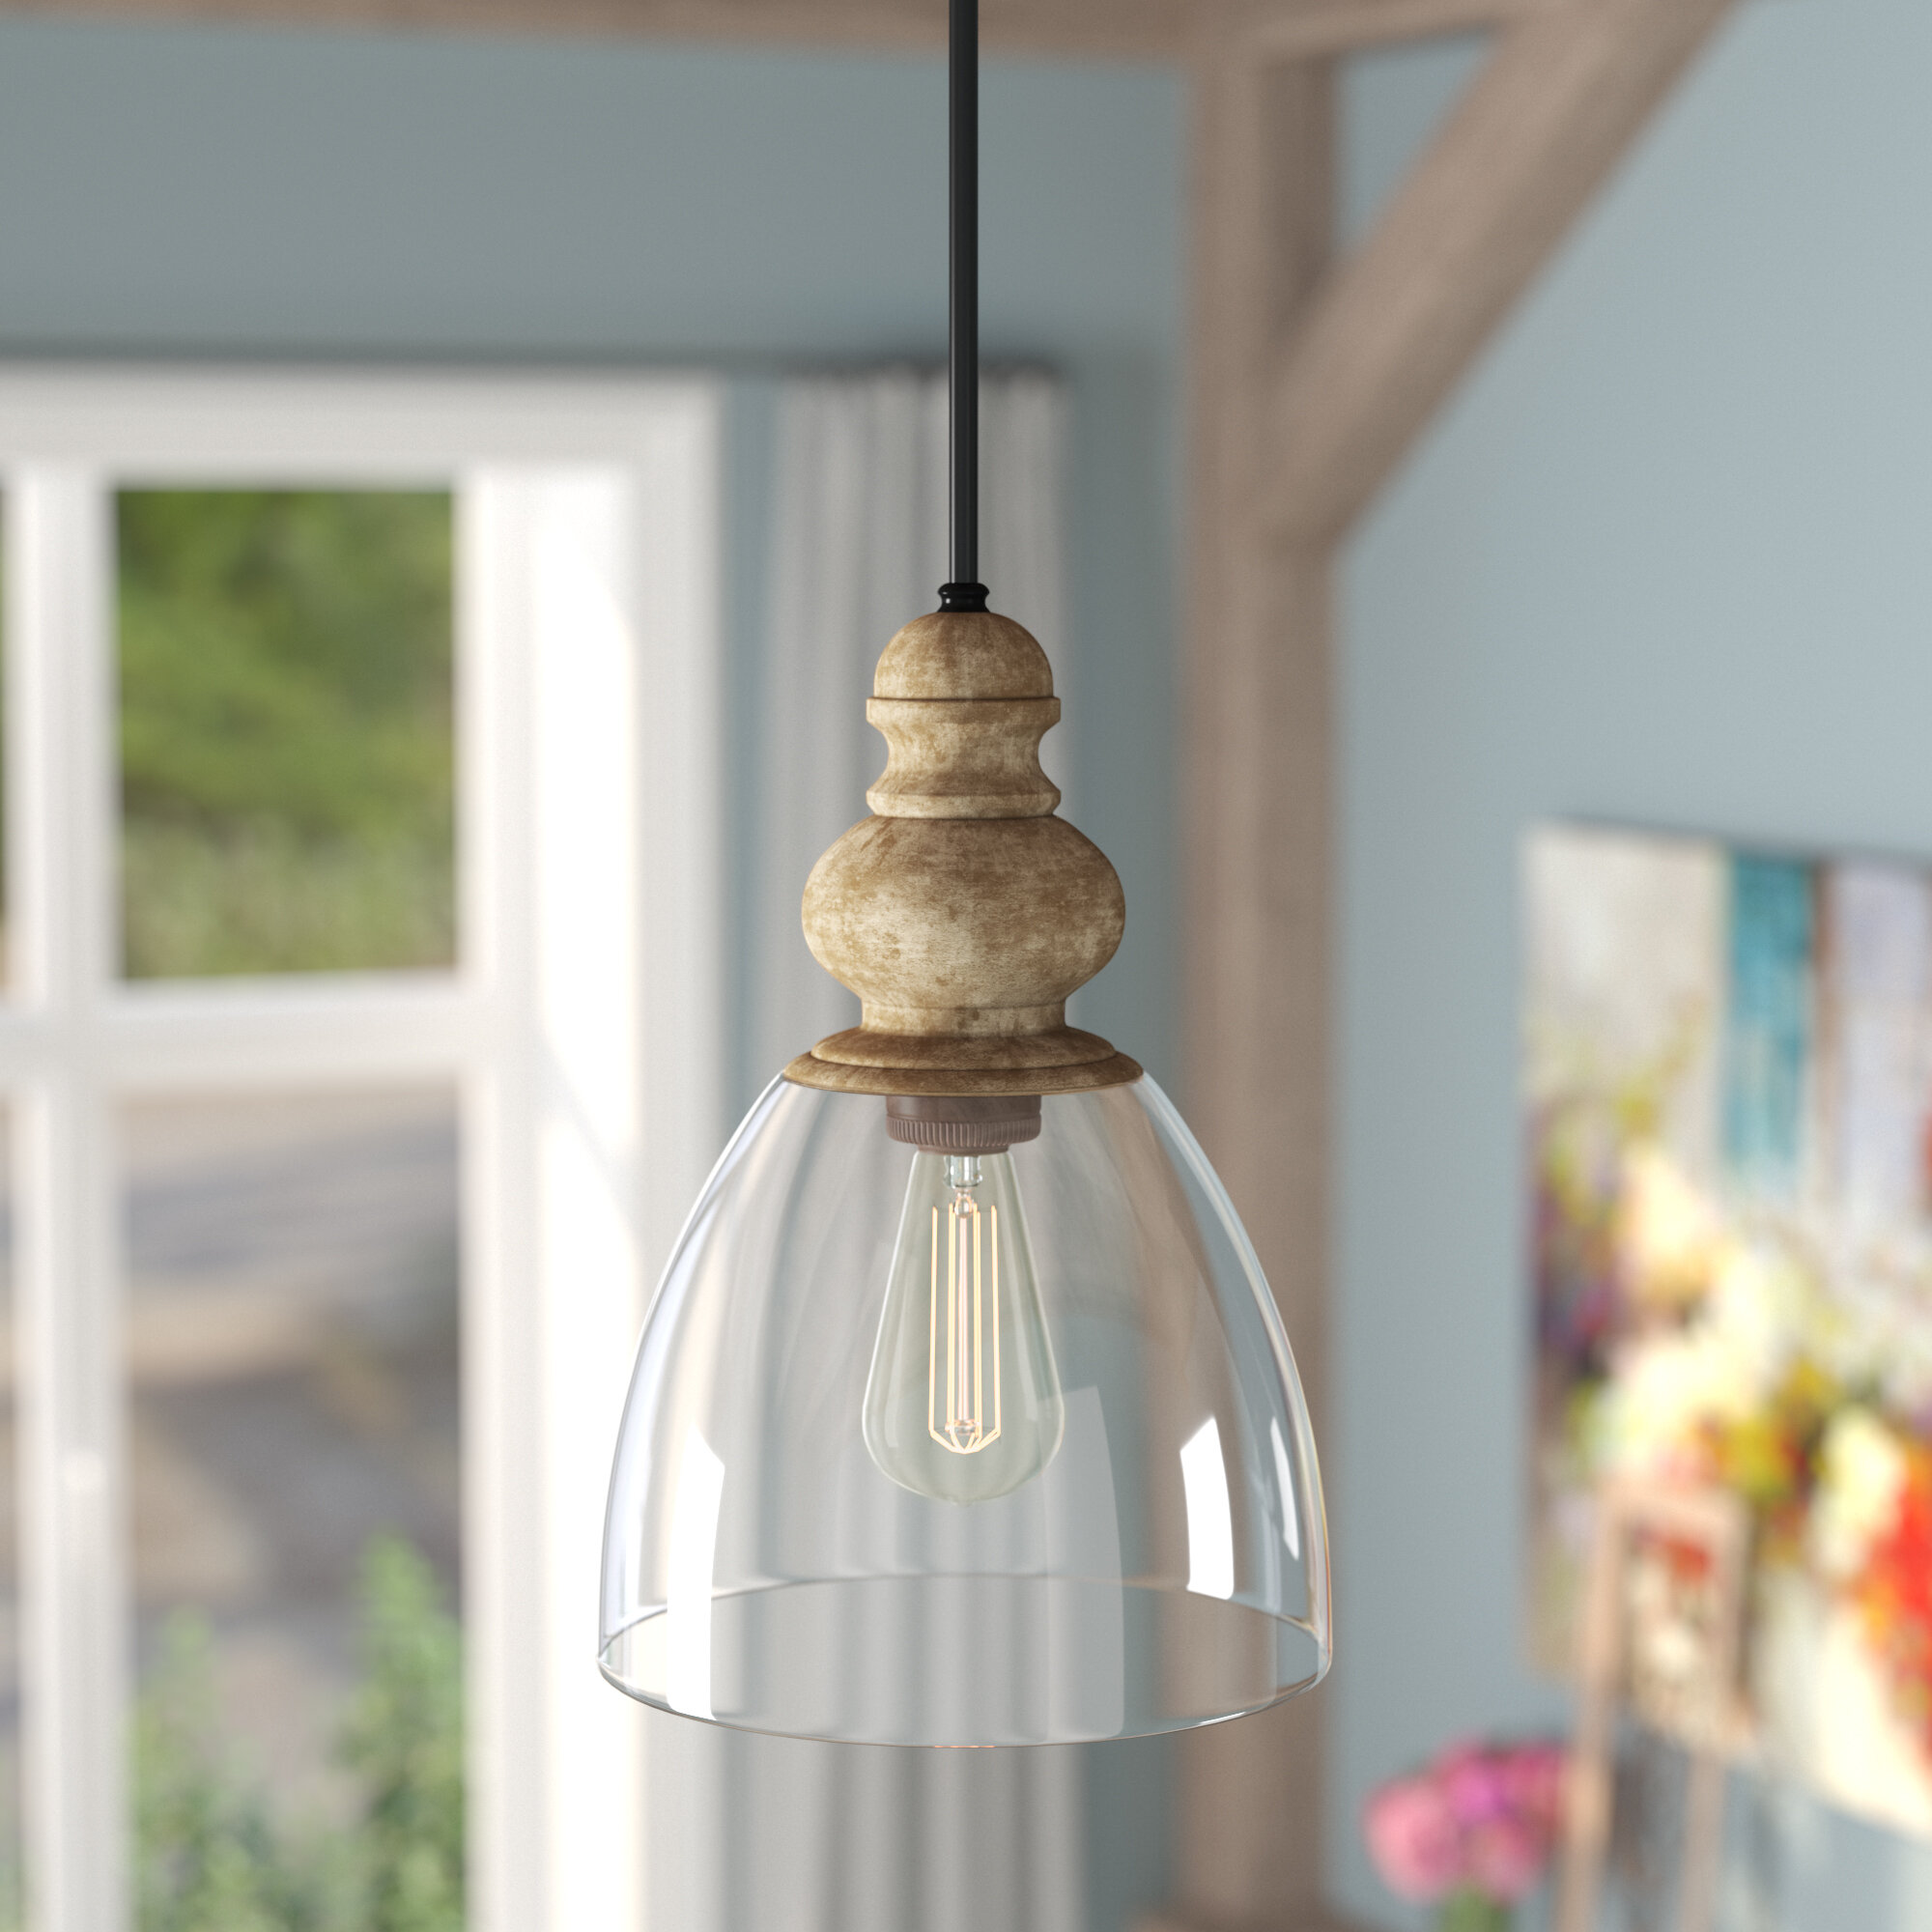 canada lighting lowe view island light pendant dvi s larger multi cl kitchen oberon